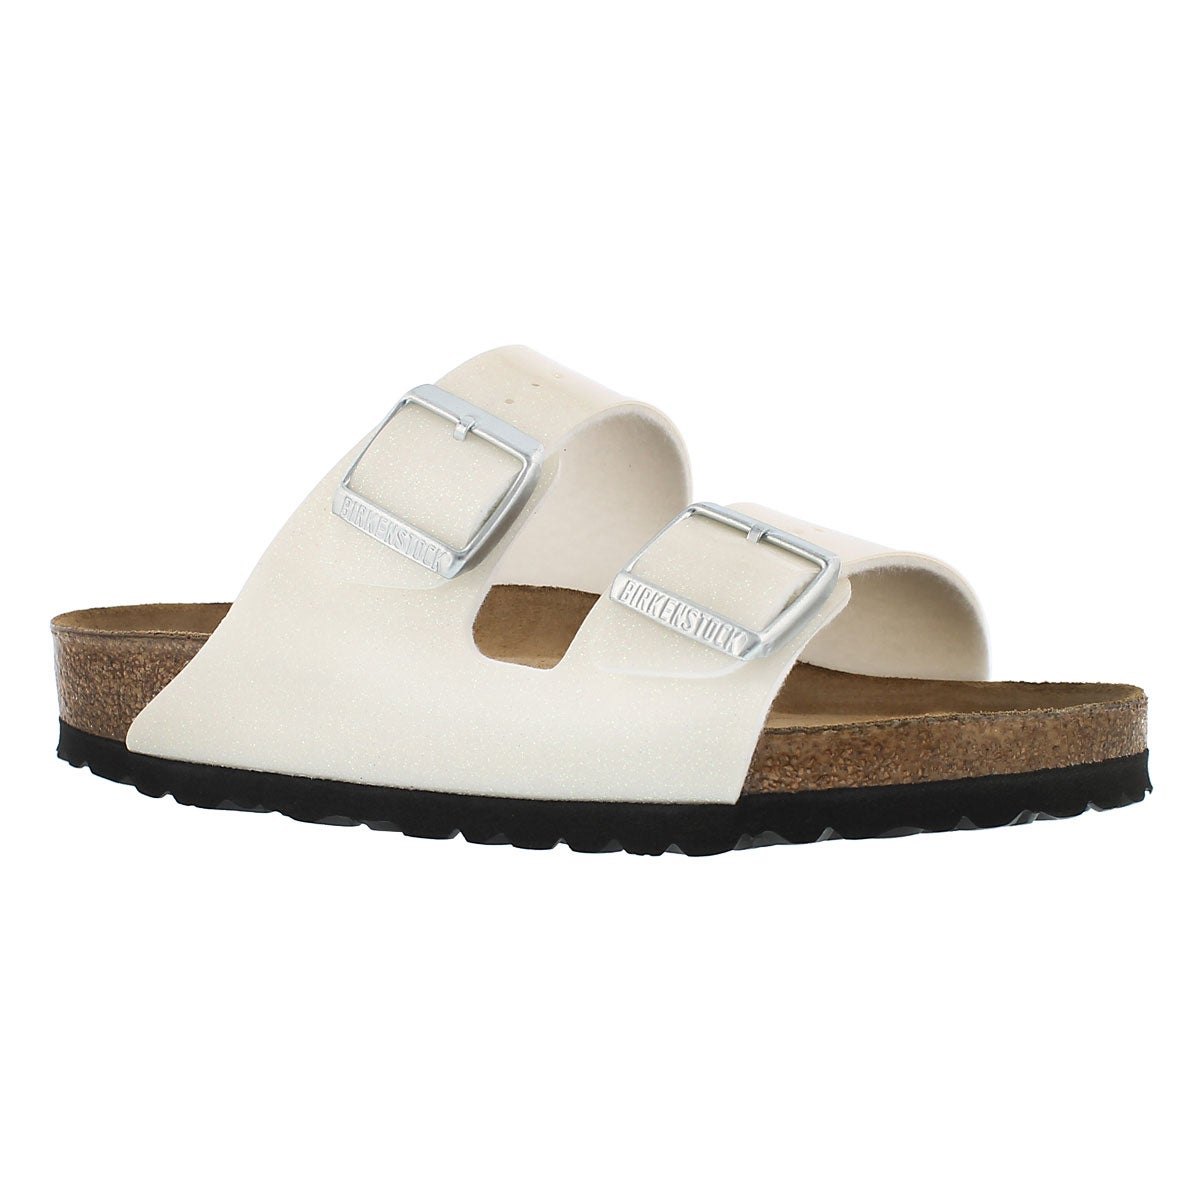 Birkenstock Florida Nubuck With High Arch